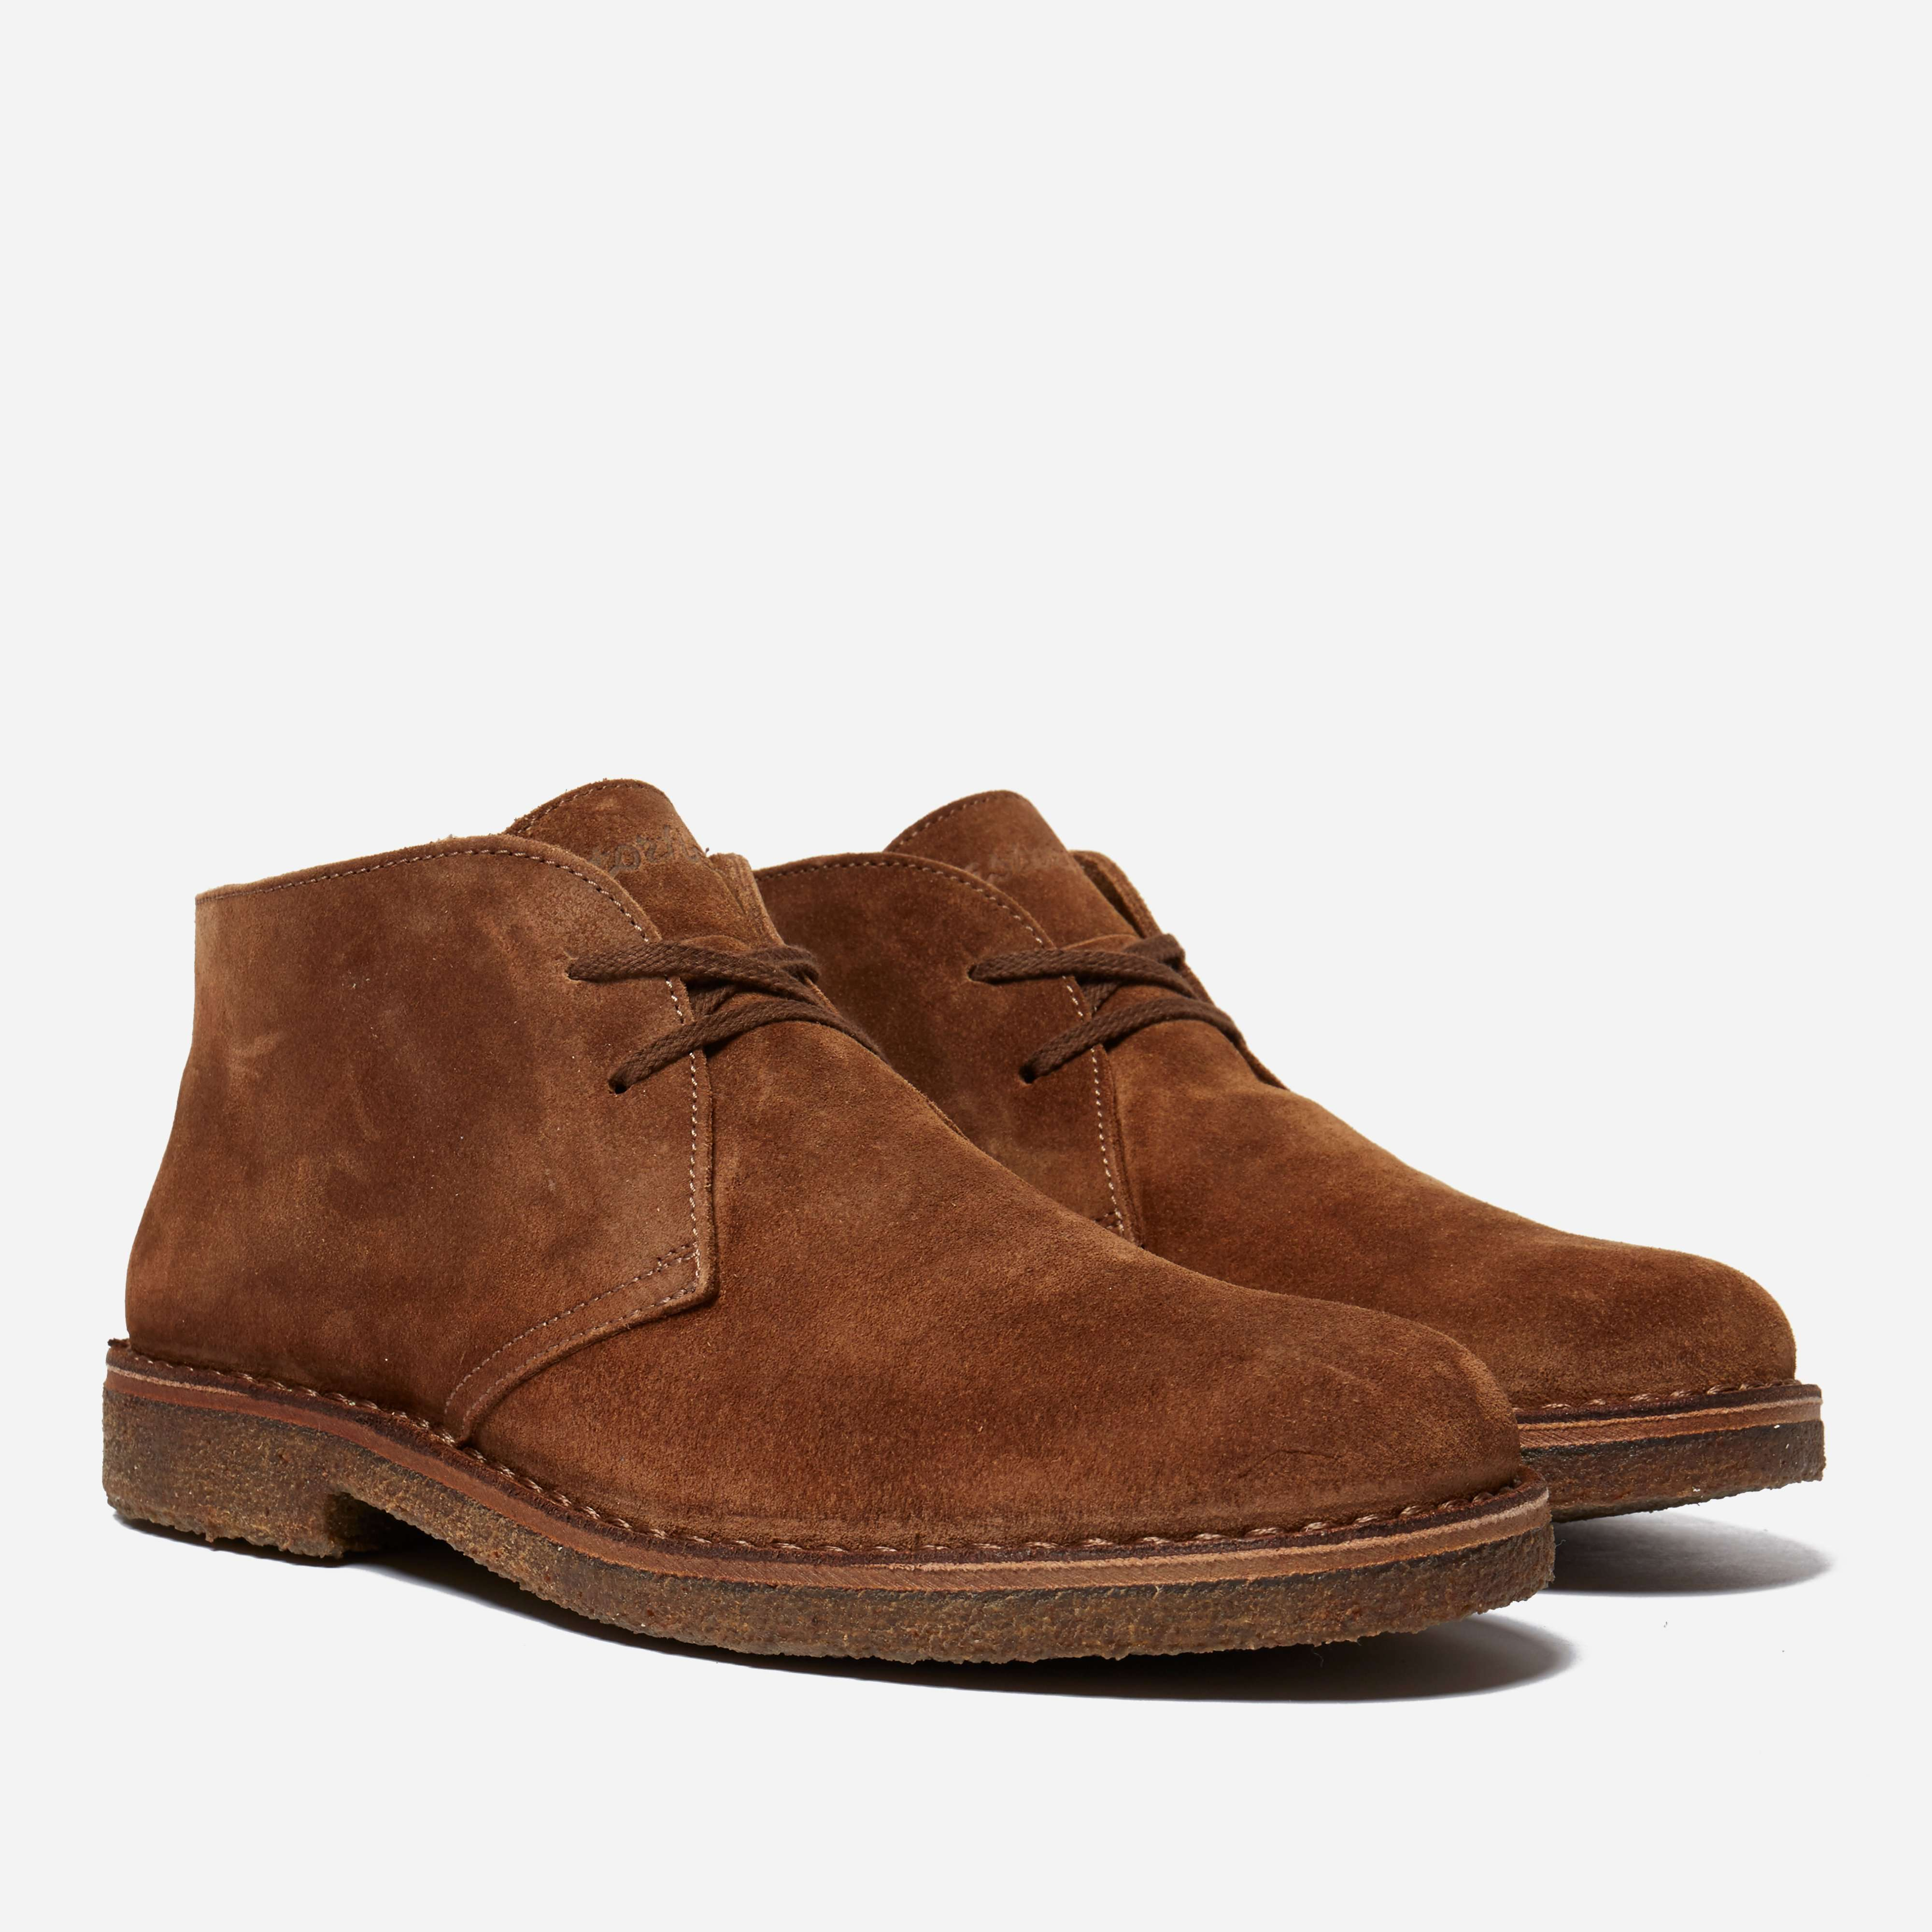 Astorflex Greenflex Desert Boot